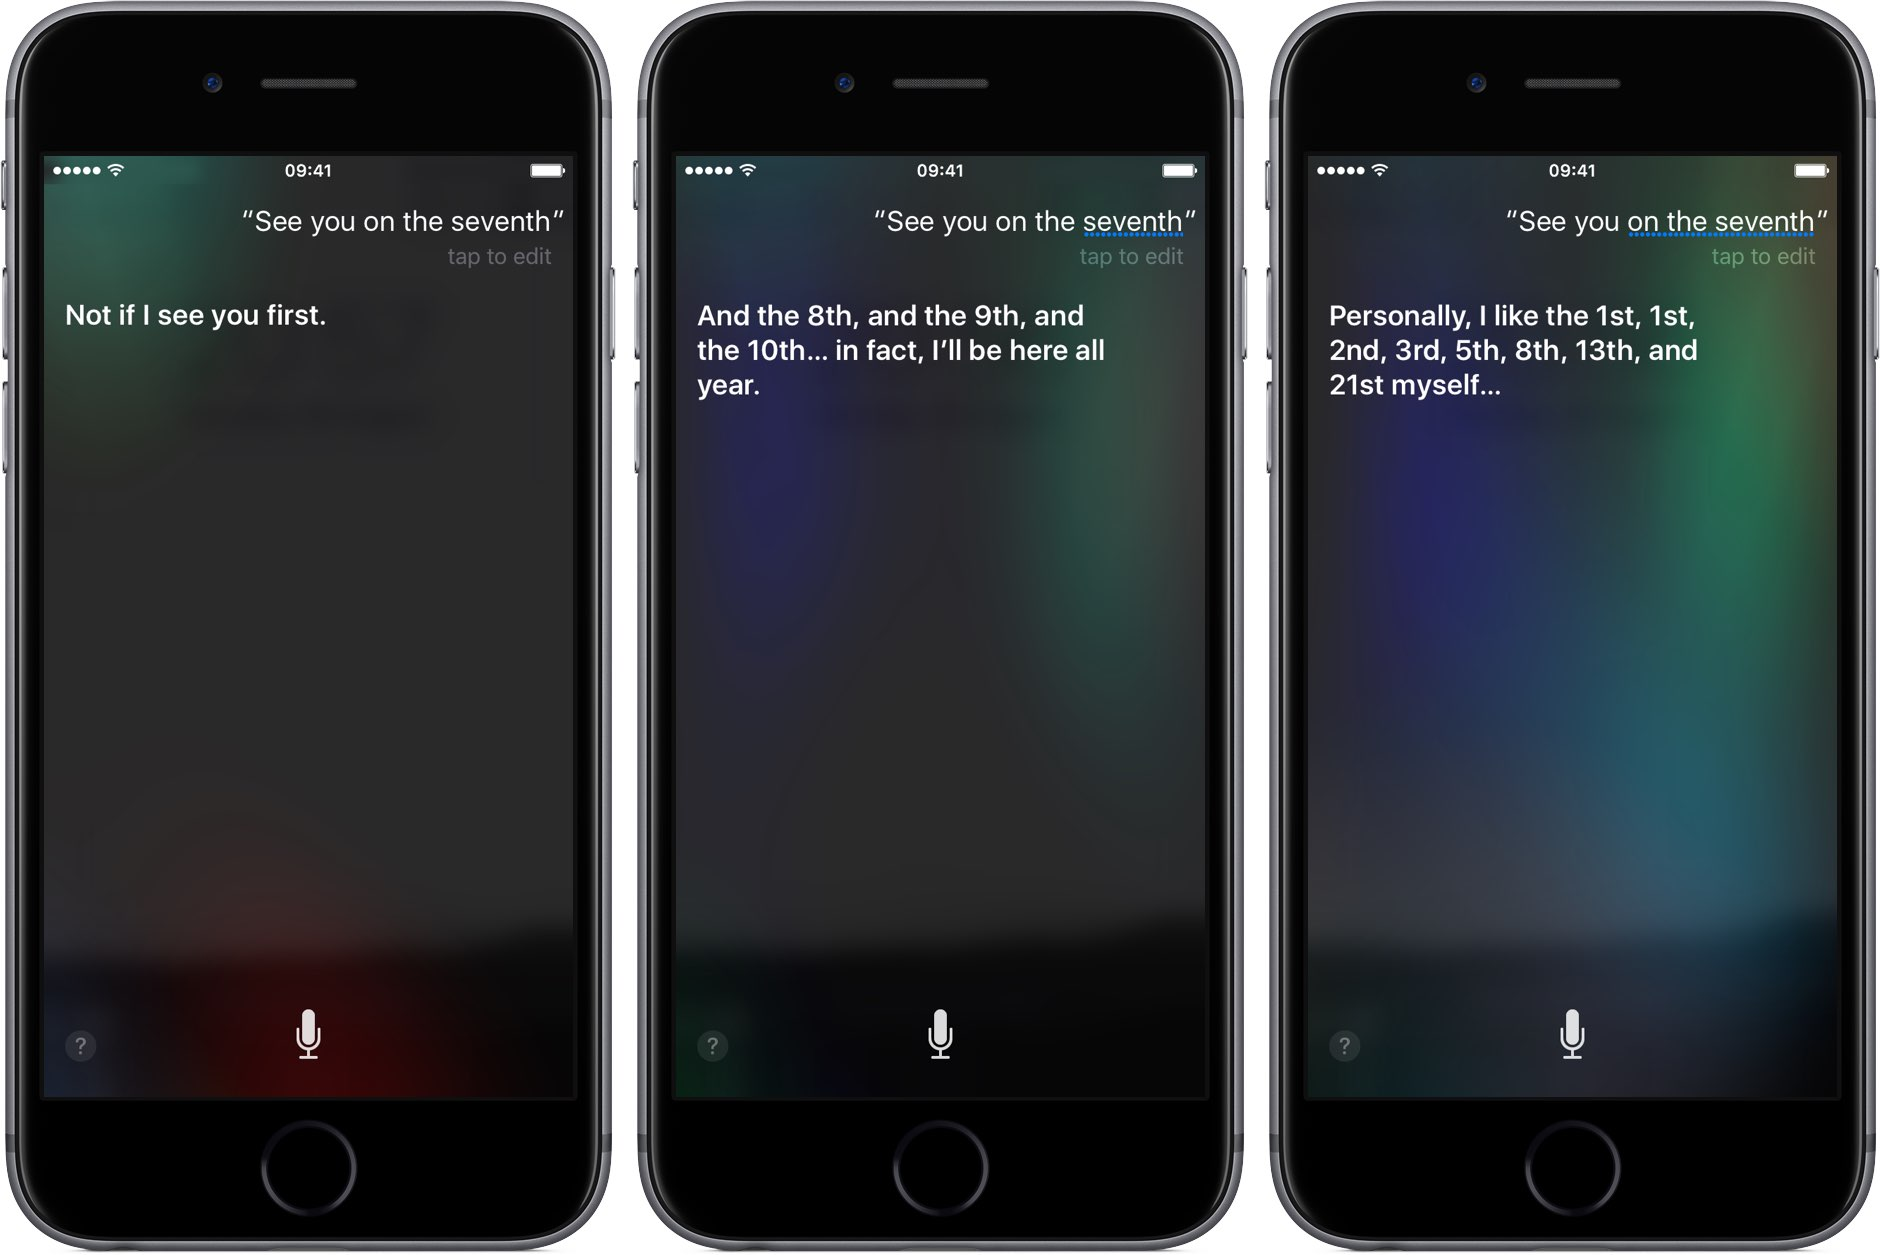 Siri iPhone 7 event responses space gray iPhone screenshot 001